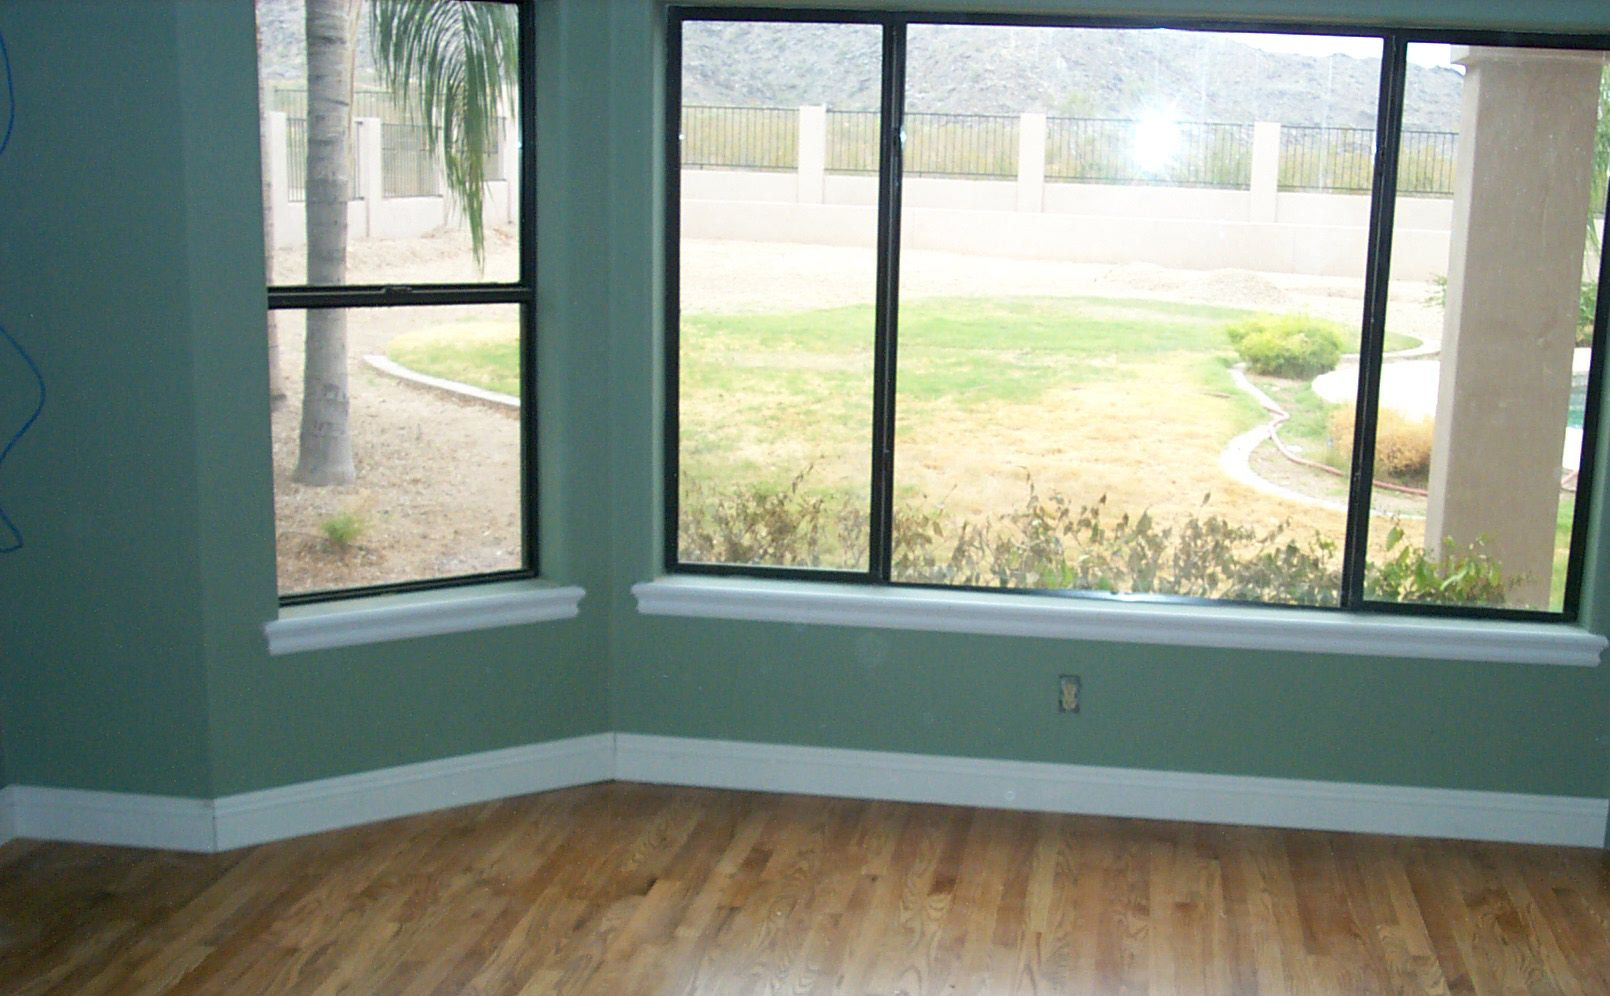 Interior window sill window sill ideas window trim will for Interior windows